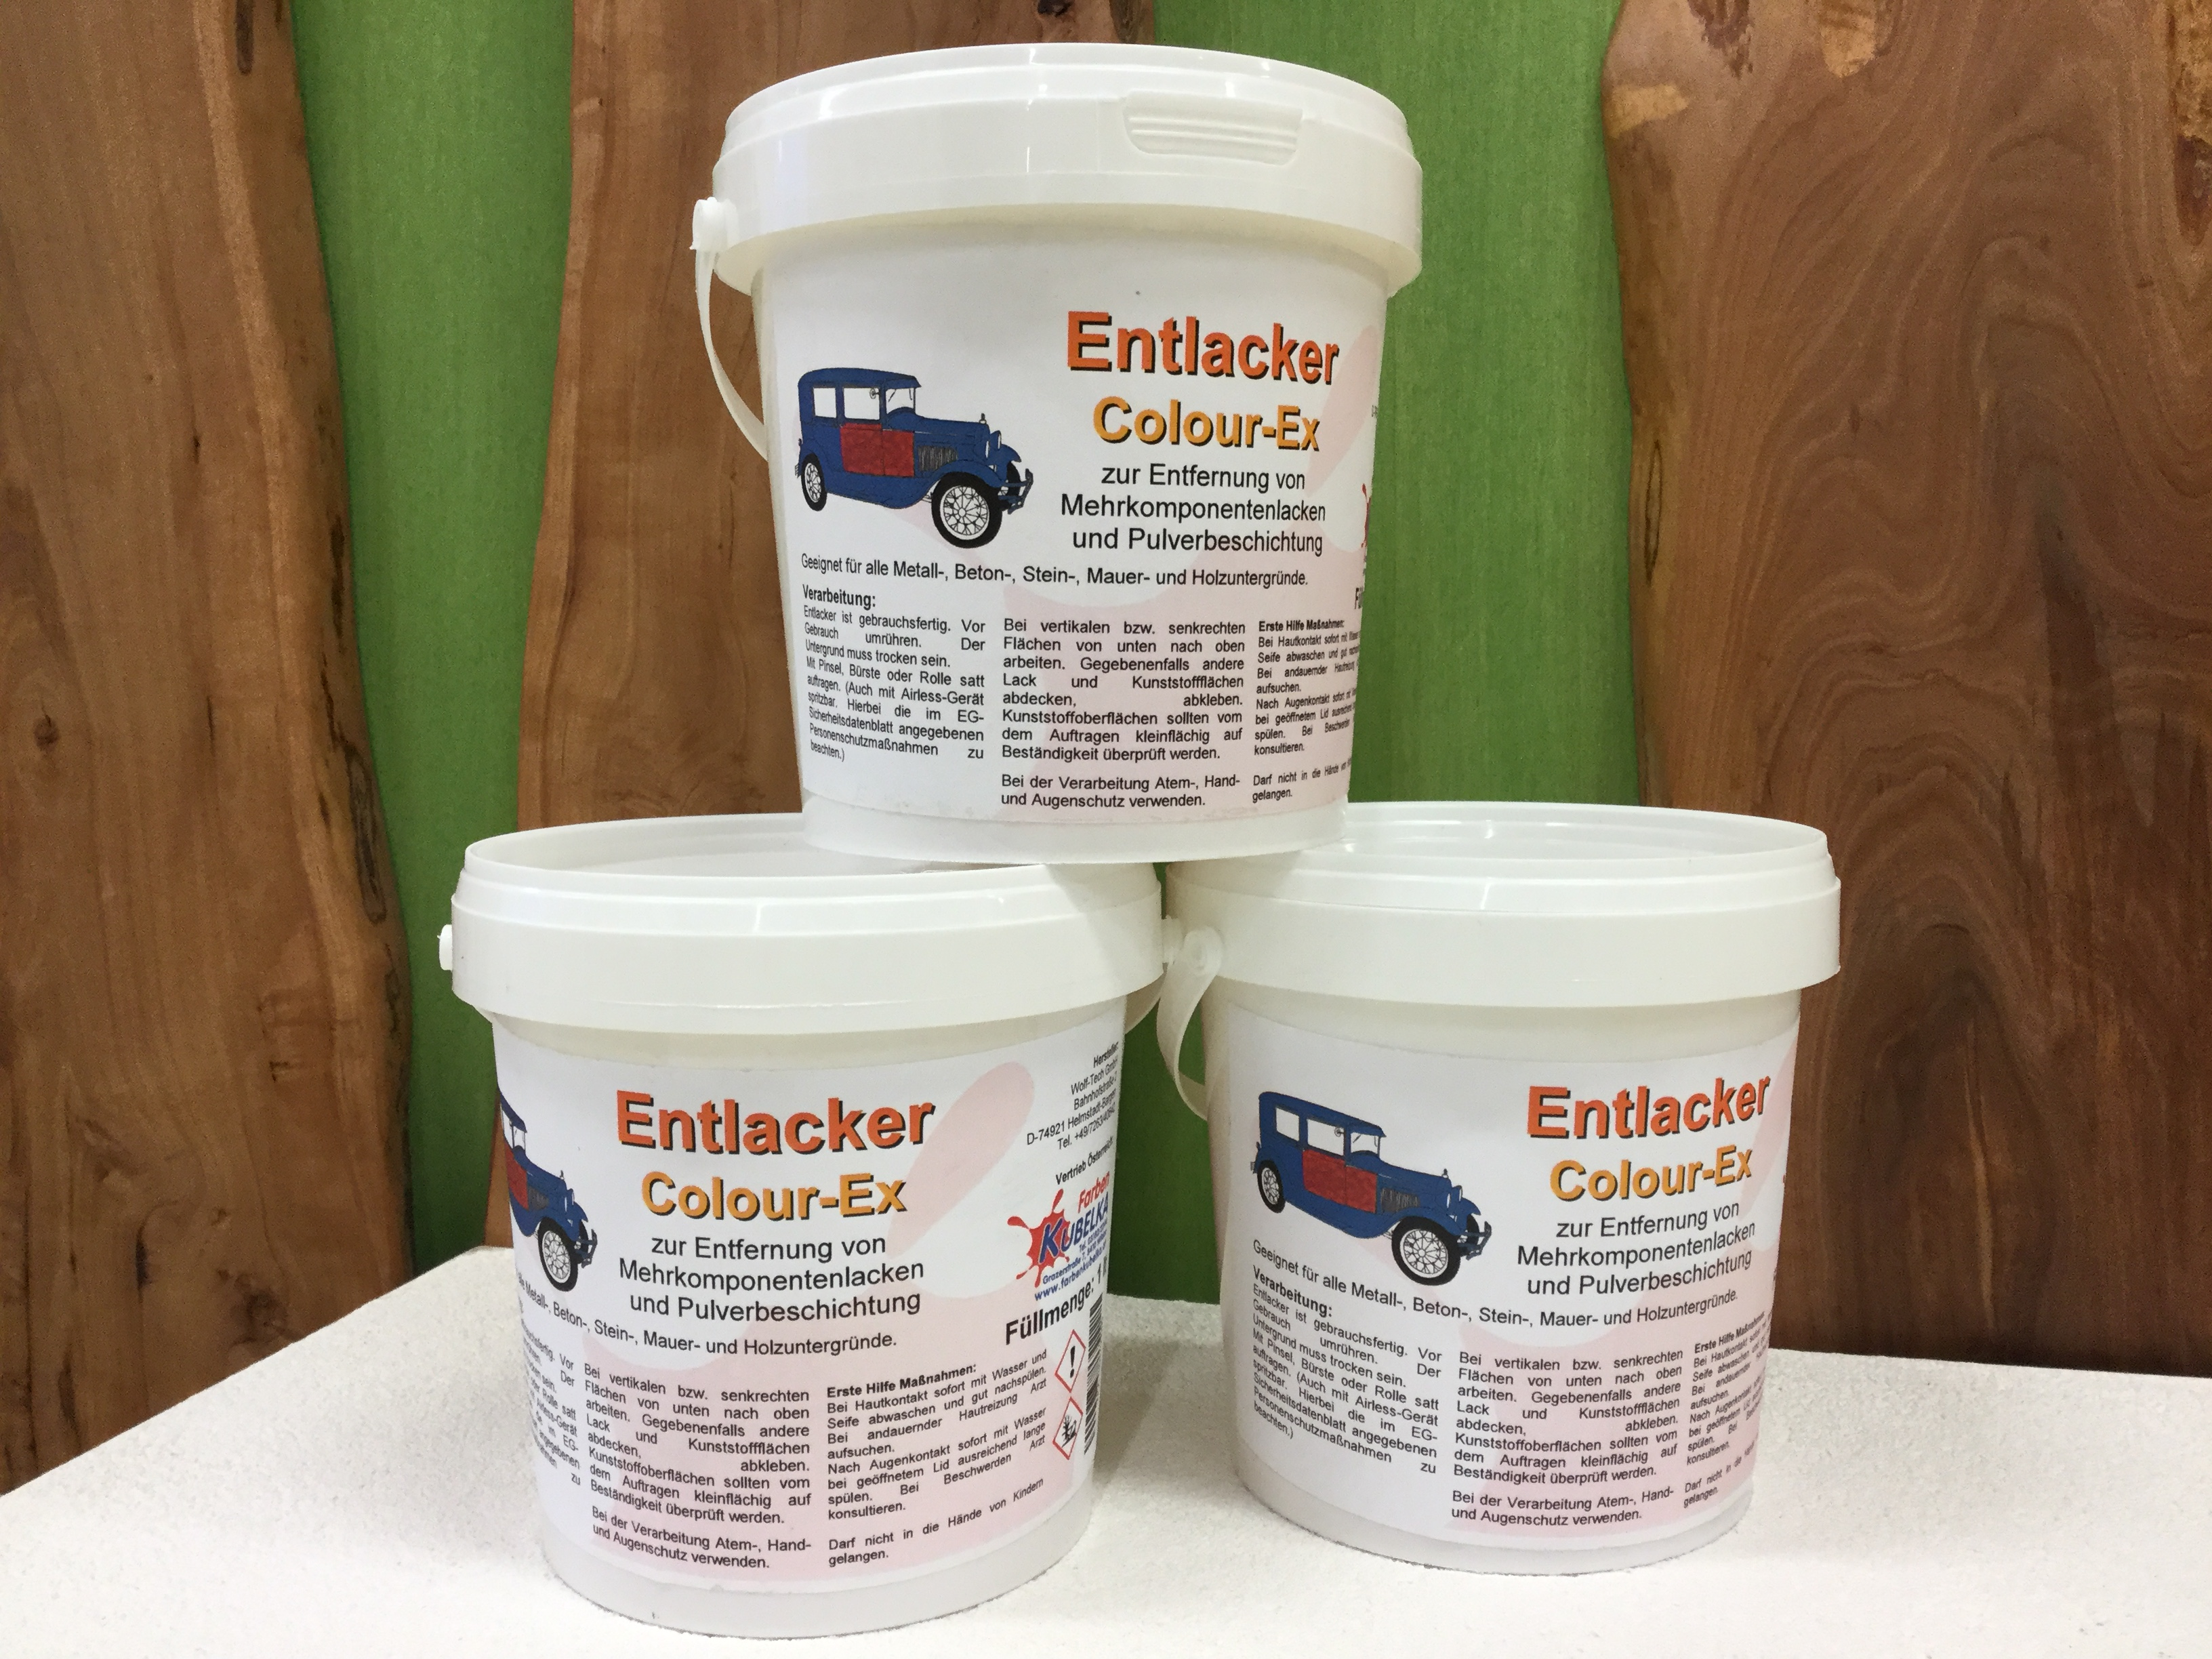 Entlacker Colour-Ex